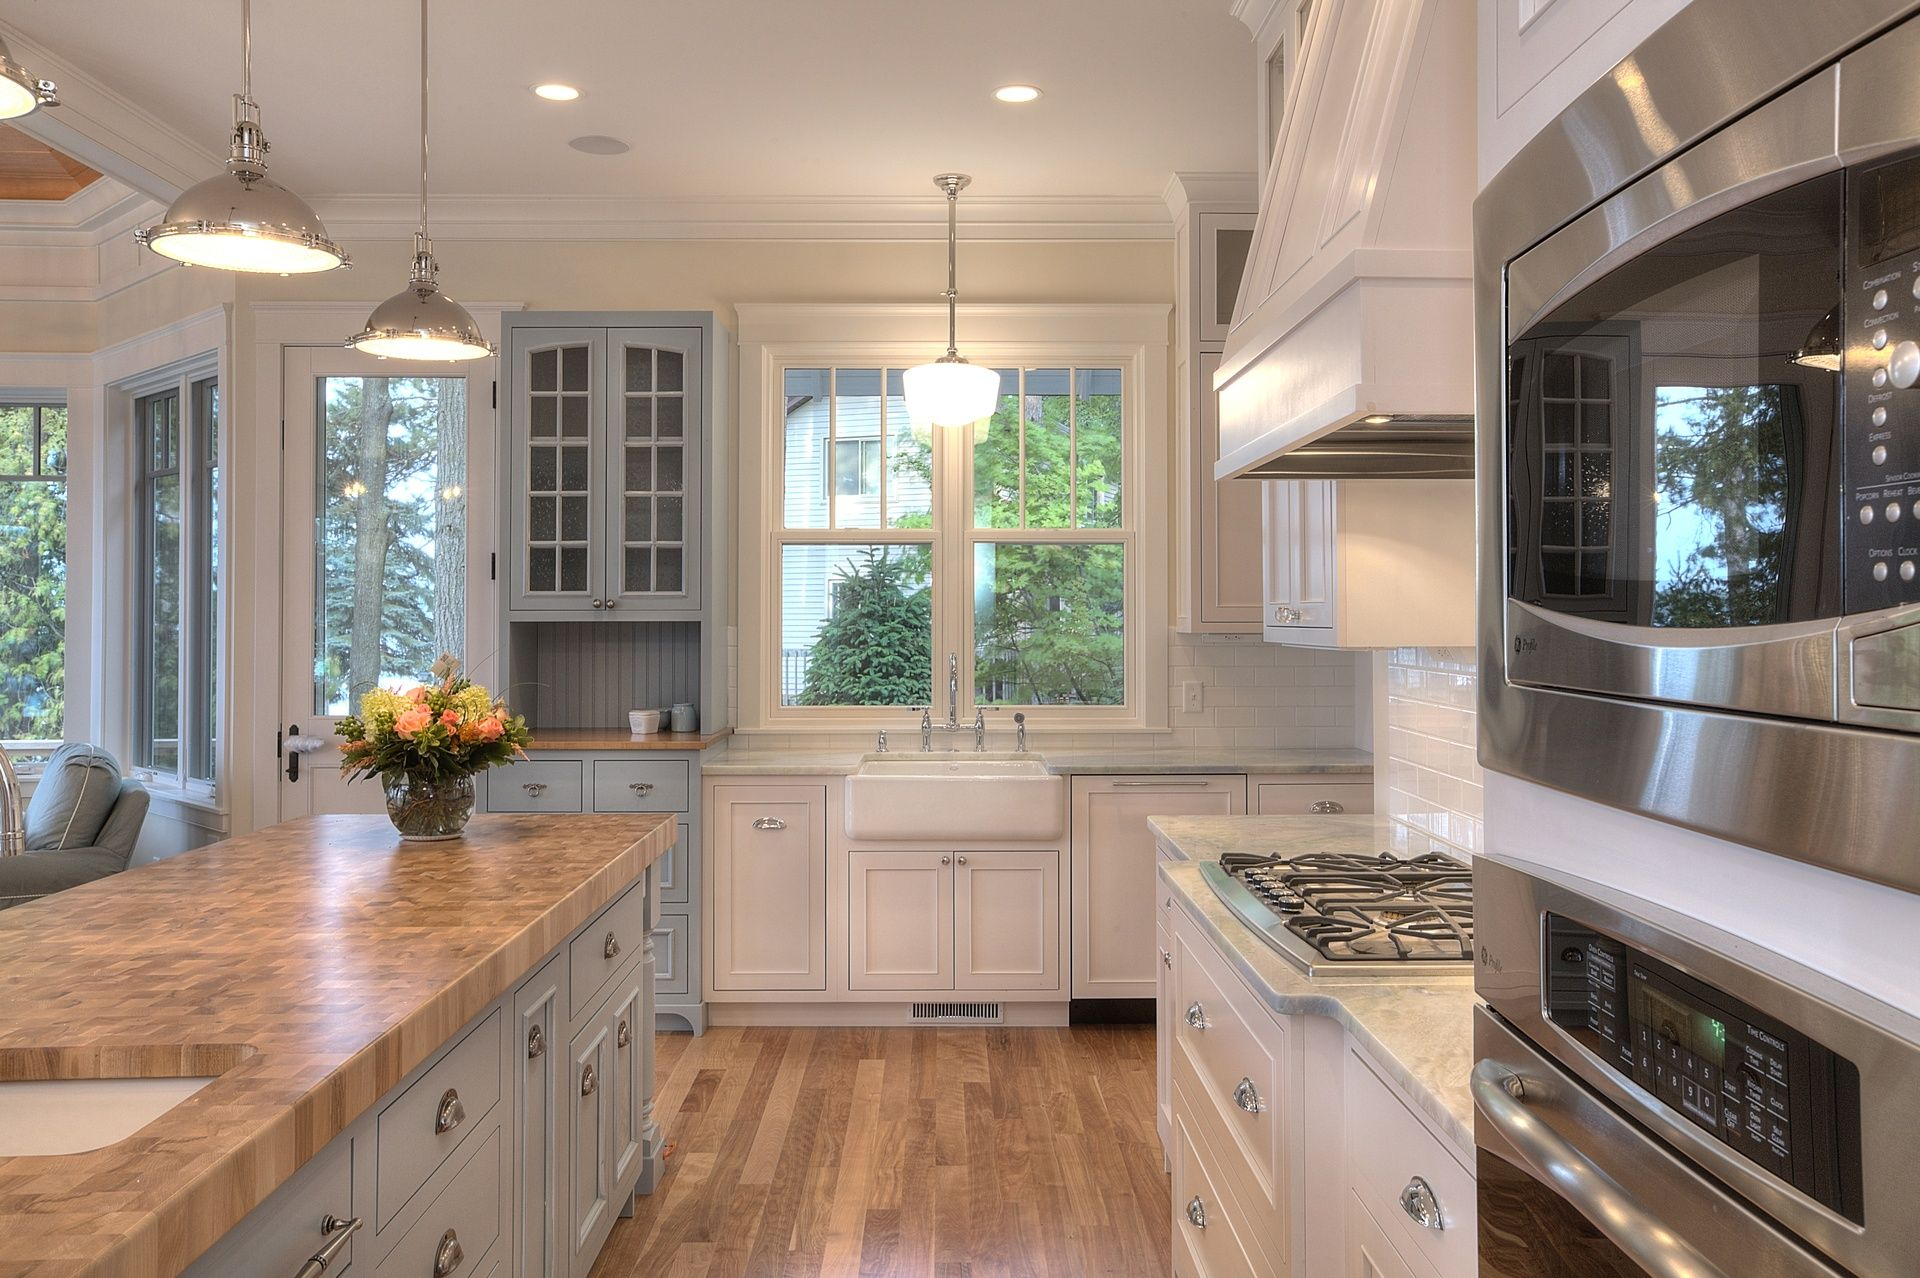 Lakeviewinteriordesign.com | Kitchens to Build | Pinterest